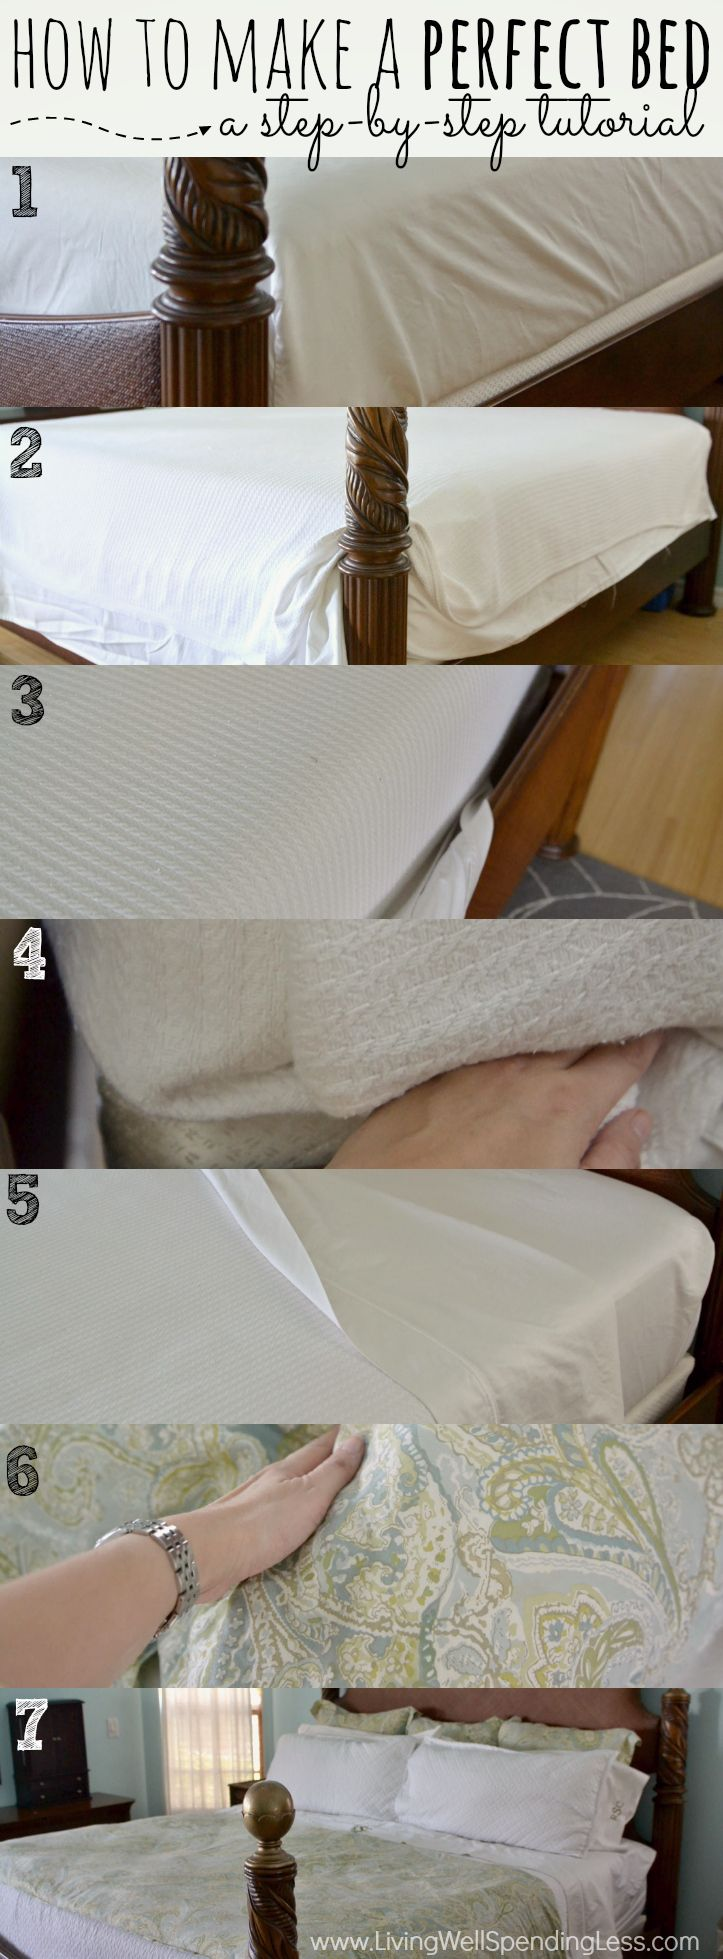 Ever wondered exactly how to get your bed just right?  Don't miss this step by step tutorial for making the perfect bed from a true bed-making expert!  It might just be the best night's sleep you ever have!